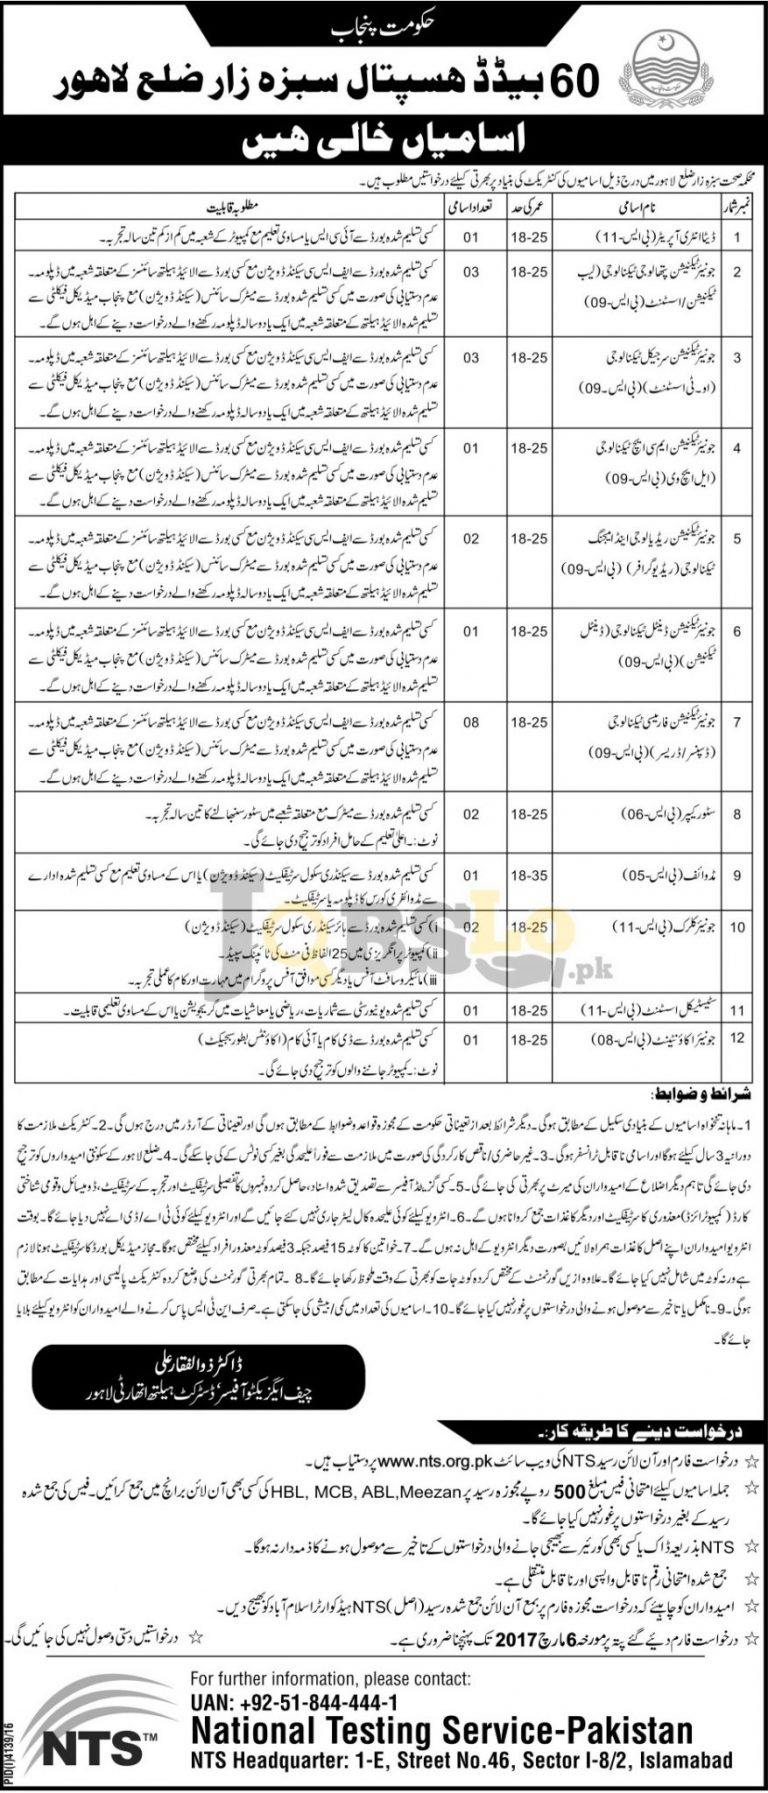 Health Department Lahore Jobs 2017 For BPS-11 To BPS-08 NTS Application Form